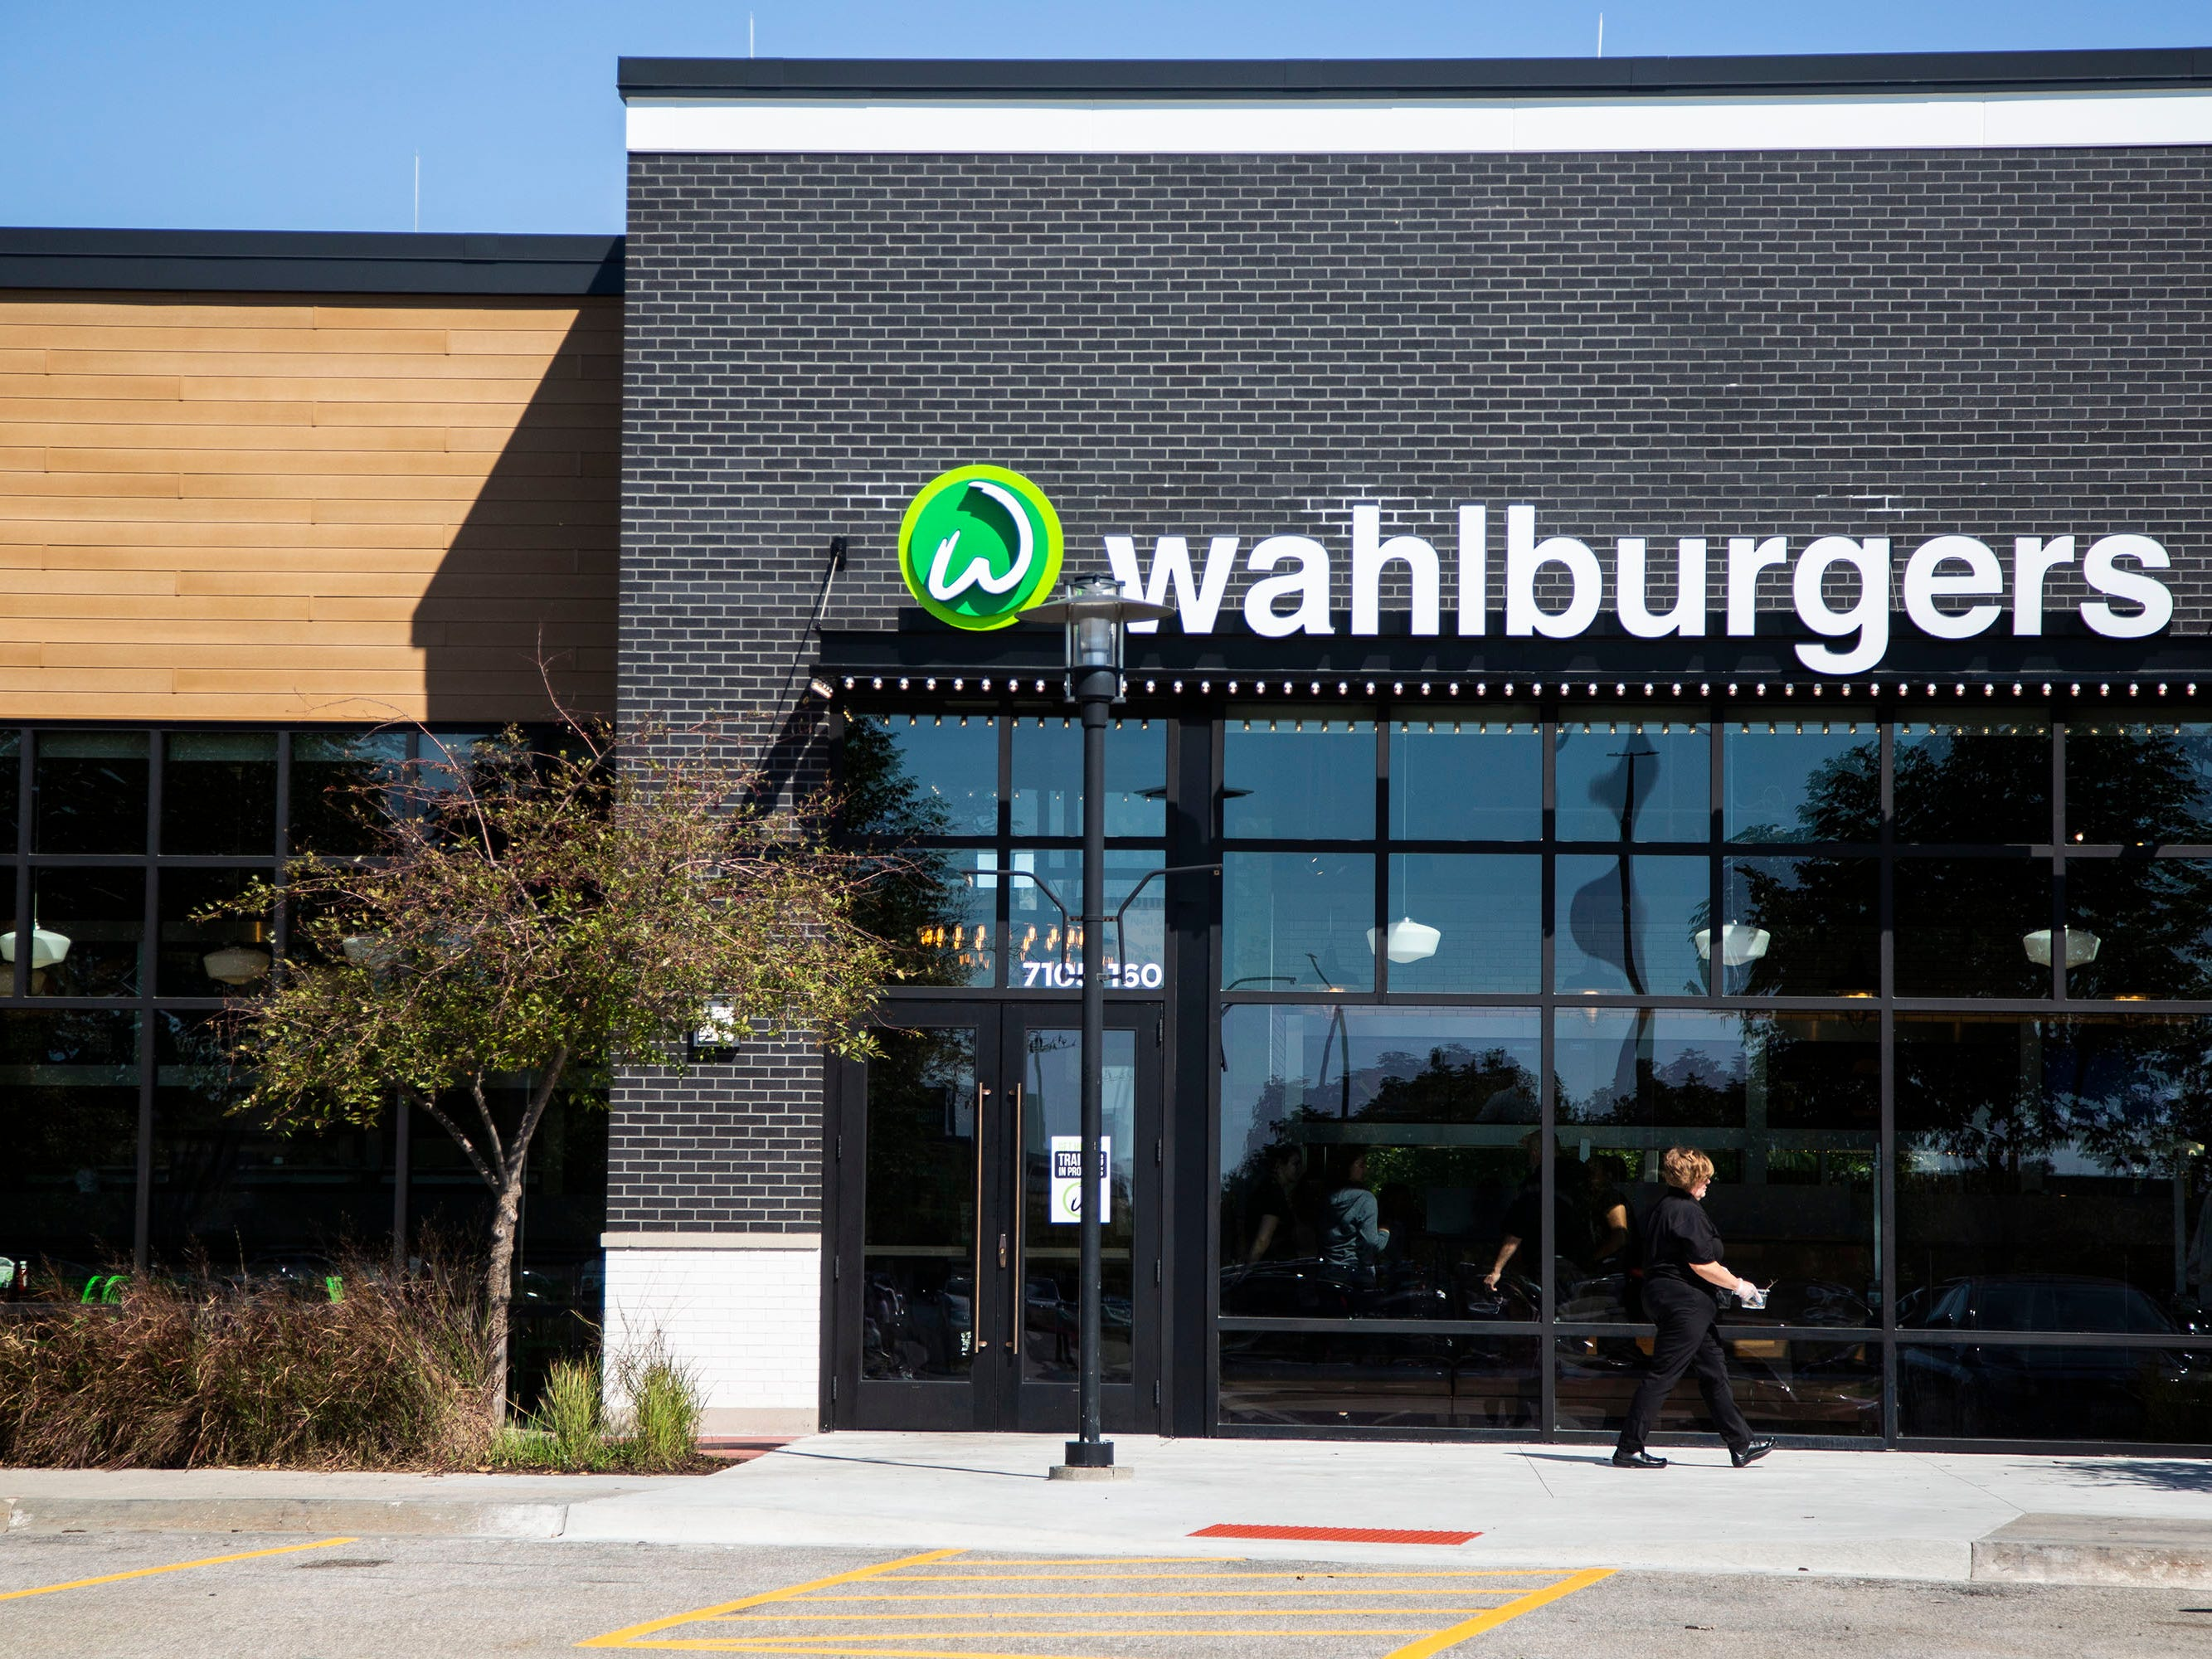 Staff prepare for opening day at Wahlburgers on Monday, Sept. 10, 2018, in the Jordan Creek Town Center in West Des Moines. Hy-Vee is bringing 26 locations of the burger restaurant to the midwest.